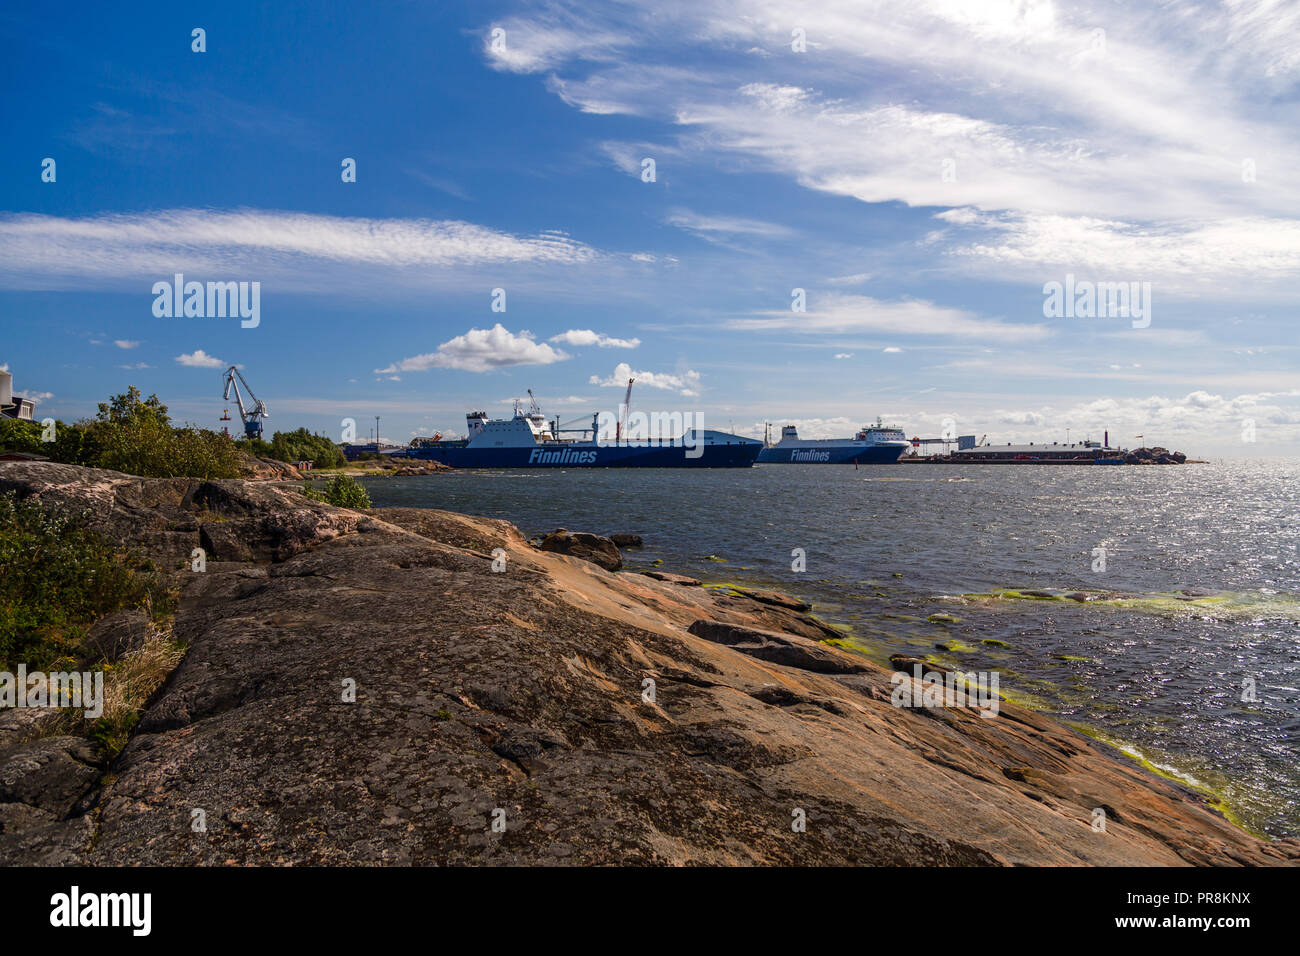 Editorial 08.18.2018 Hanko Finland, Port with cargo ships at the pier on a sunny day - Stock Image